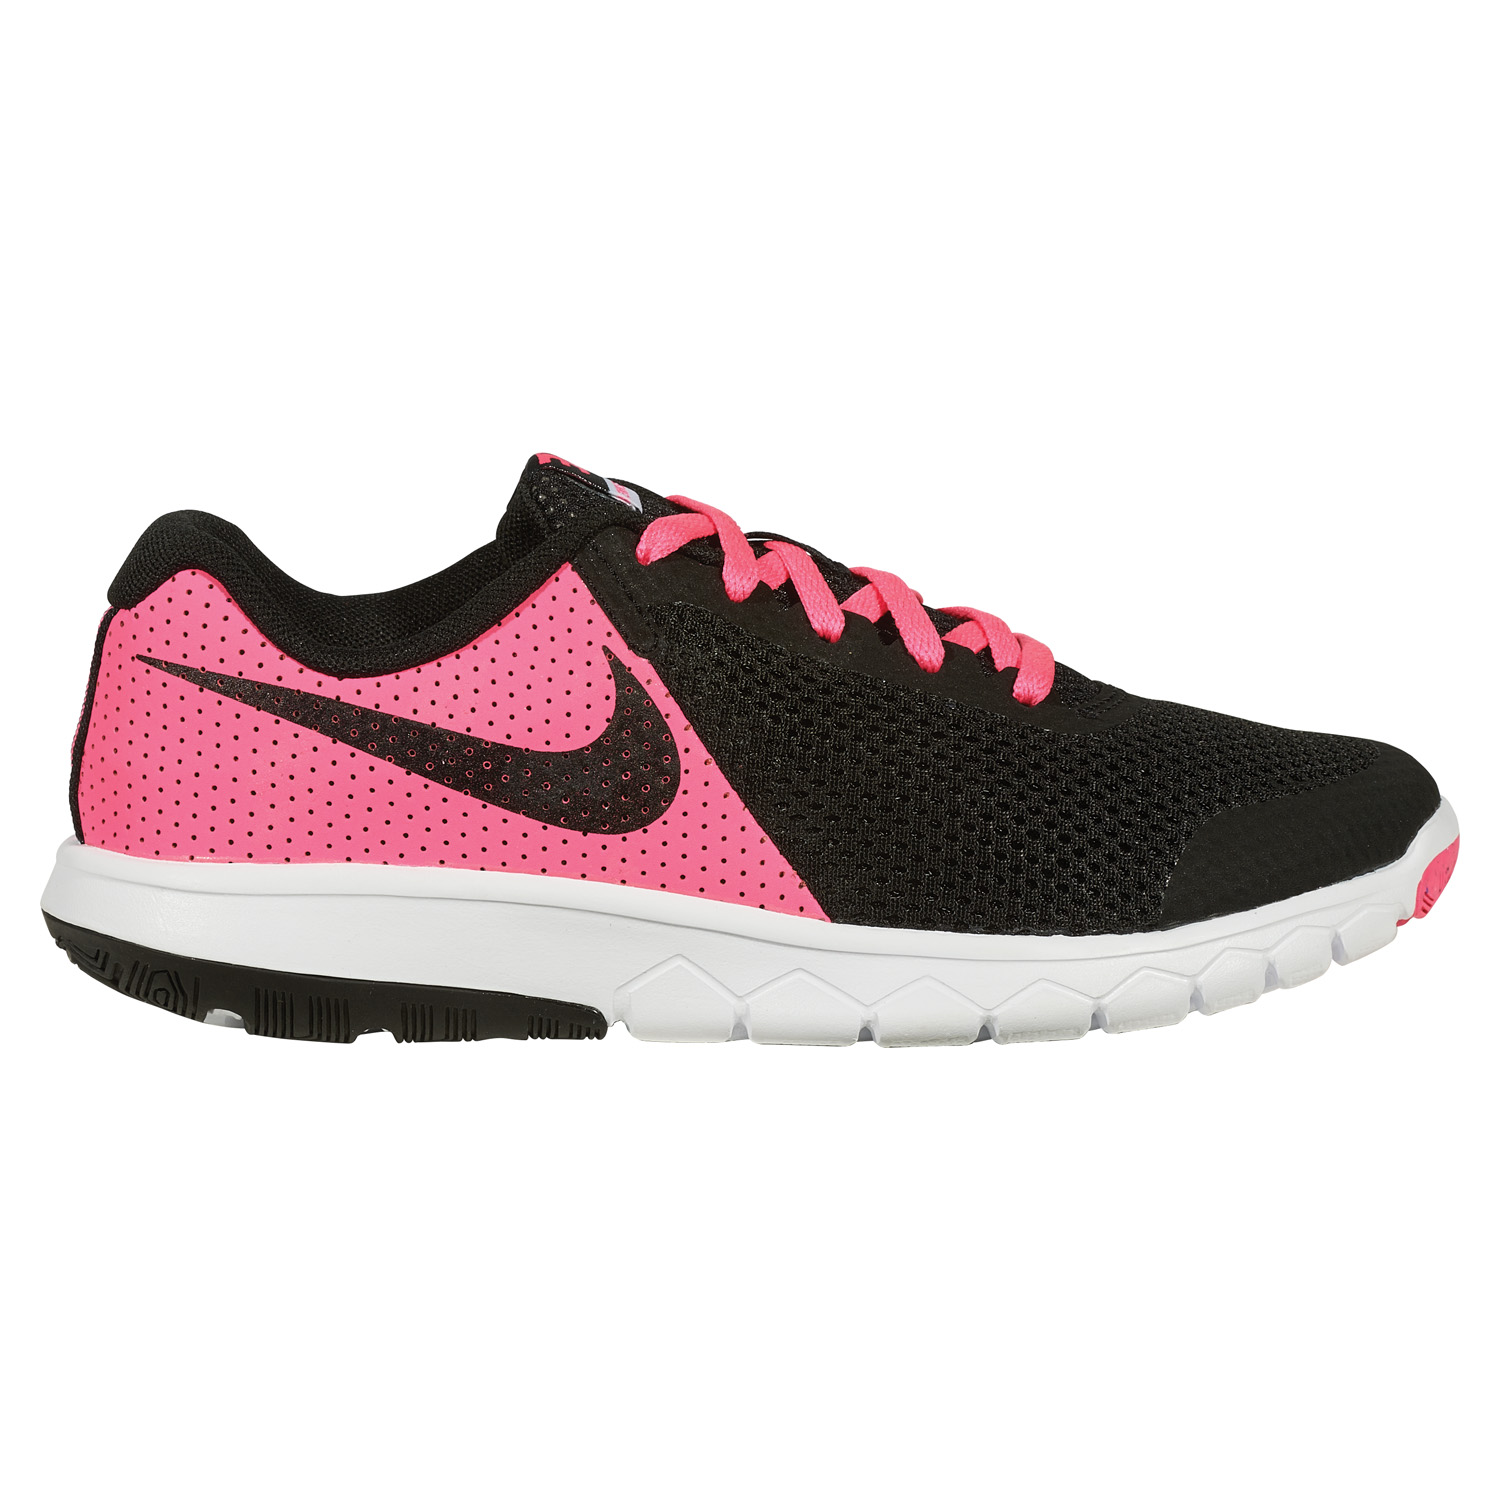 cheap for discount 6ec1c 3a62f Nike Flex Experience GS Running